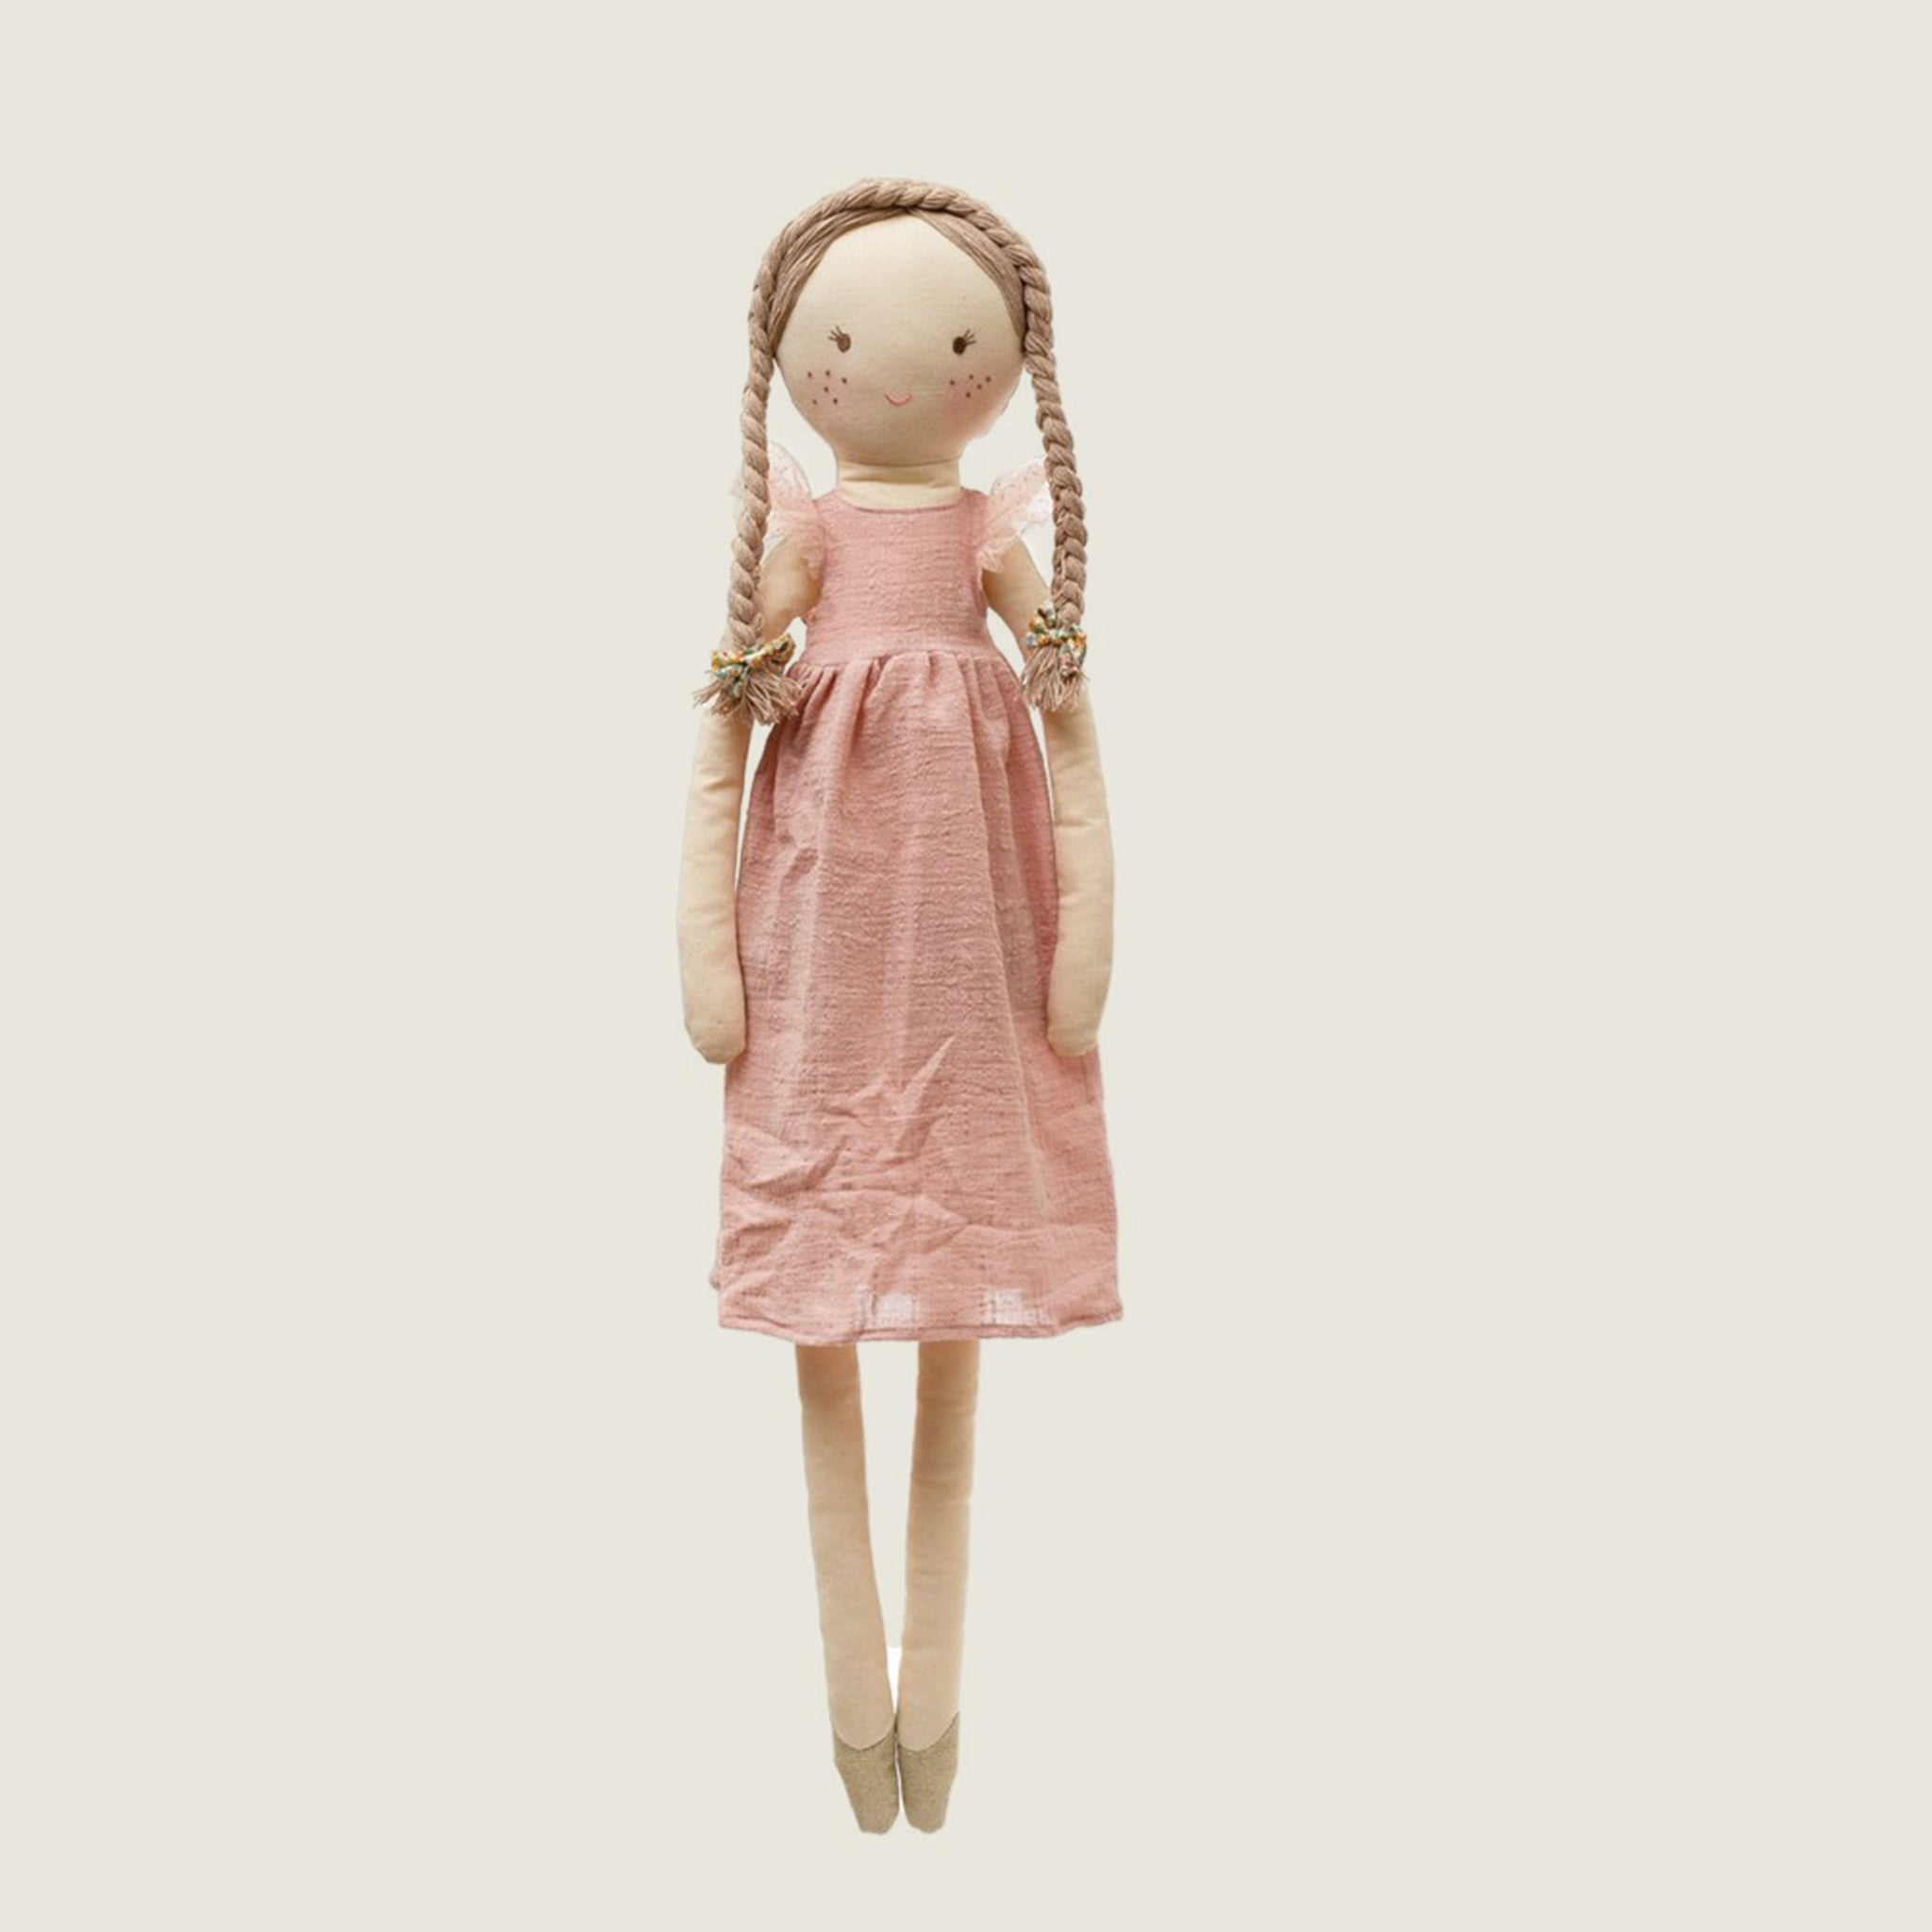 Oversized Petunia Doll - Blackbird General Store